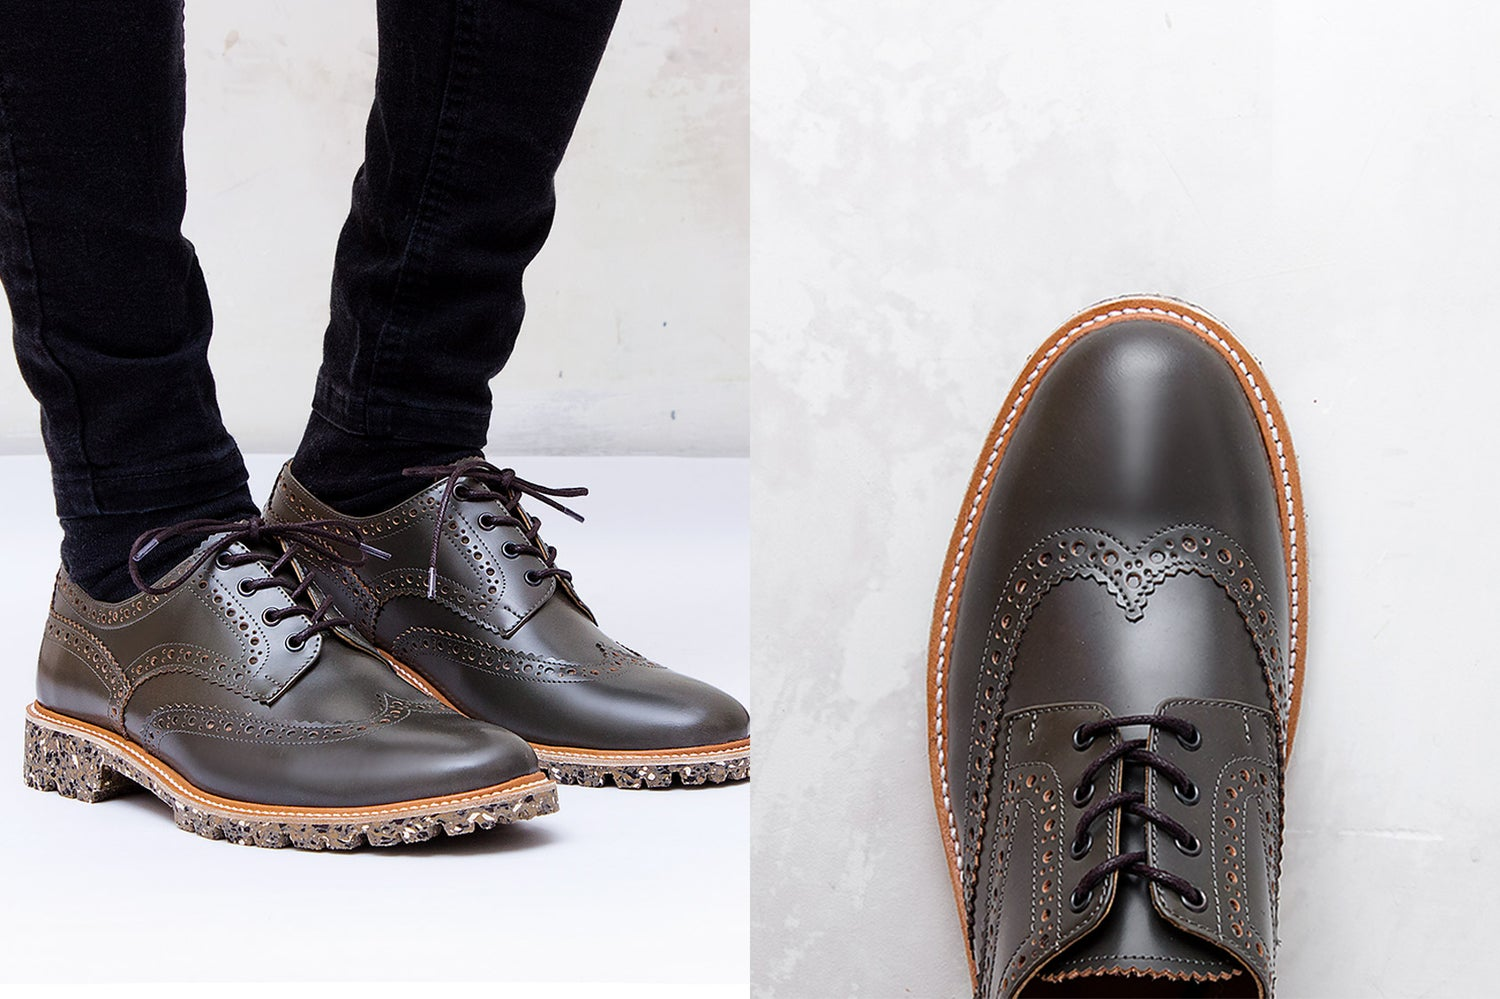 Image of Handmade Shoes | 702 Derby Wingtip Dark Olive Edition